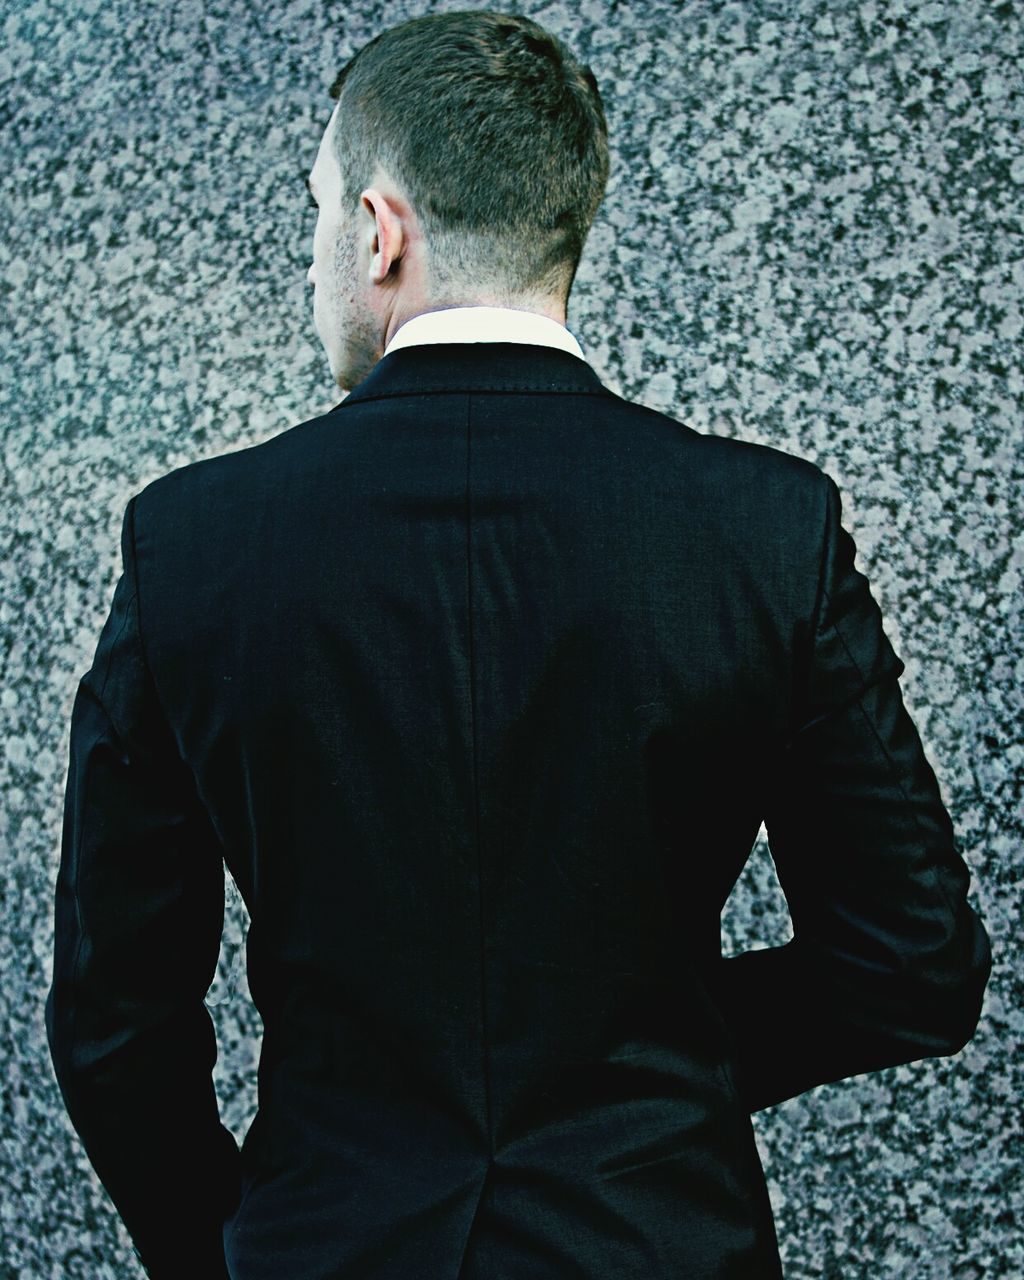 rear view, men, real people, businessman, one person, one man only, human back, business, outdoors, day, only men, adult, people